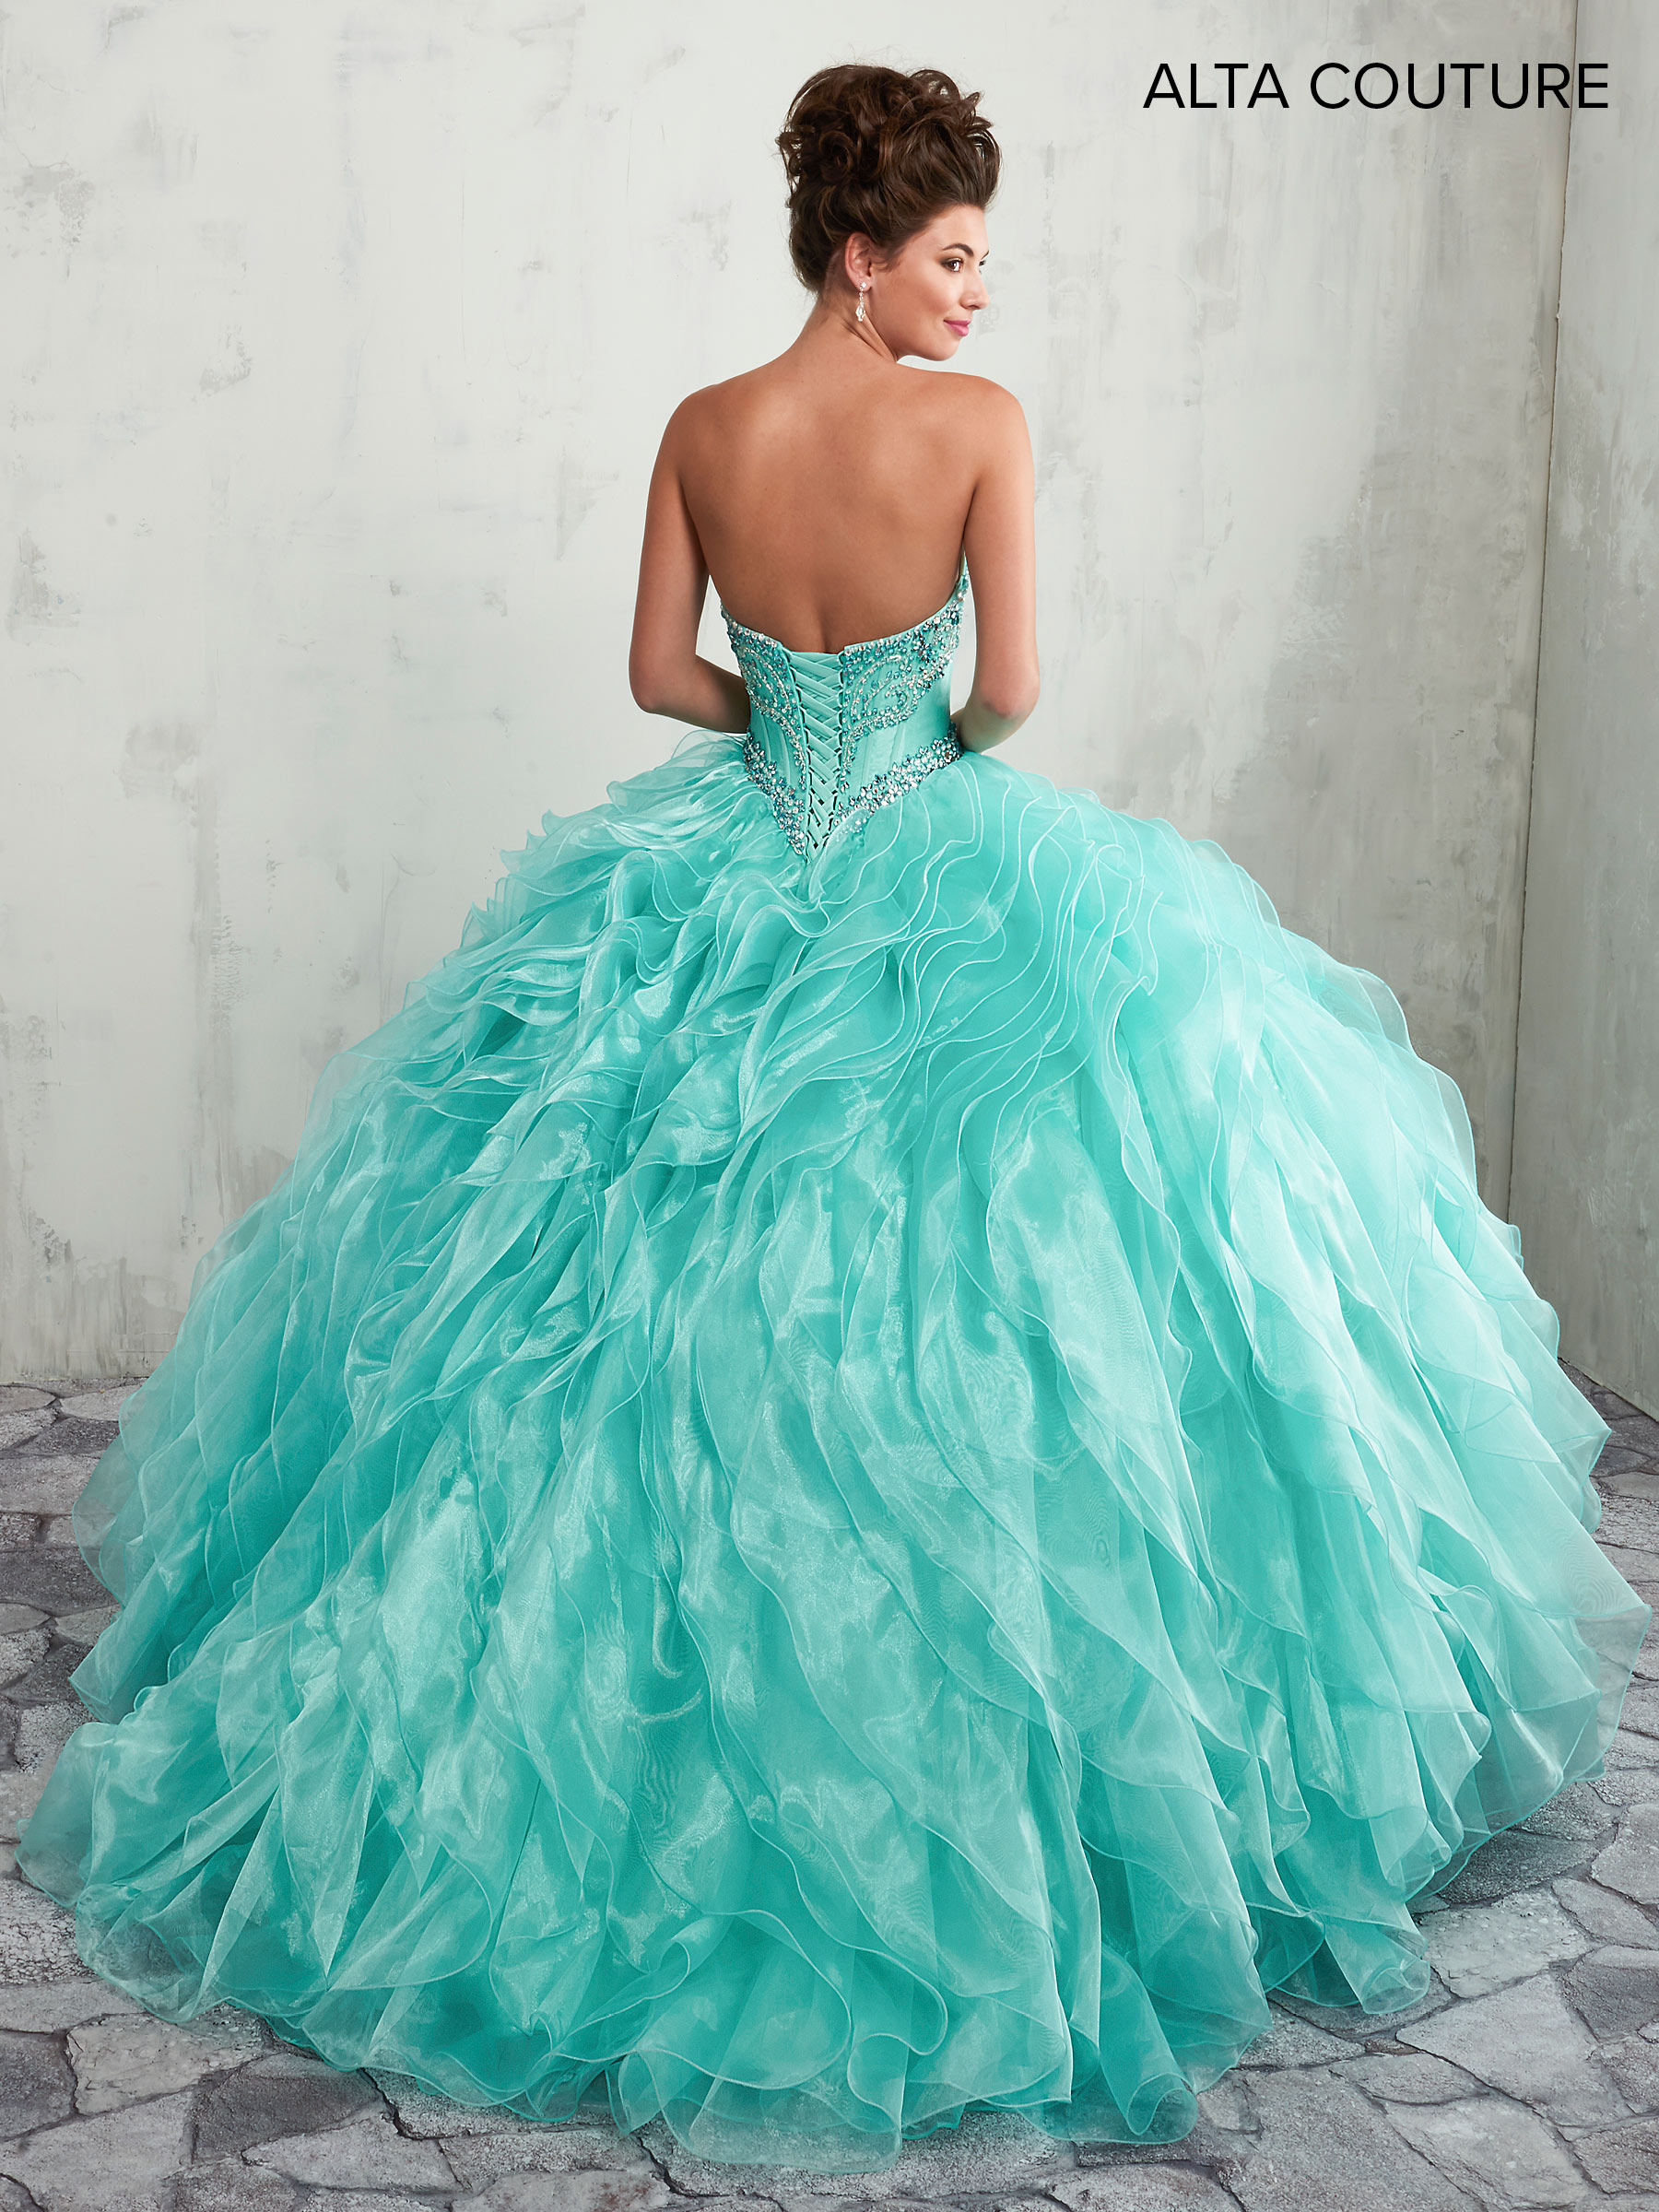 Quinceanera Couture Dresses | Alta Couture | Style - MQ3004